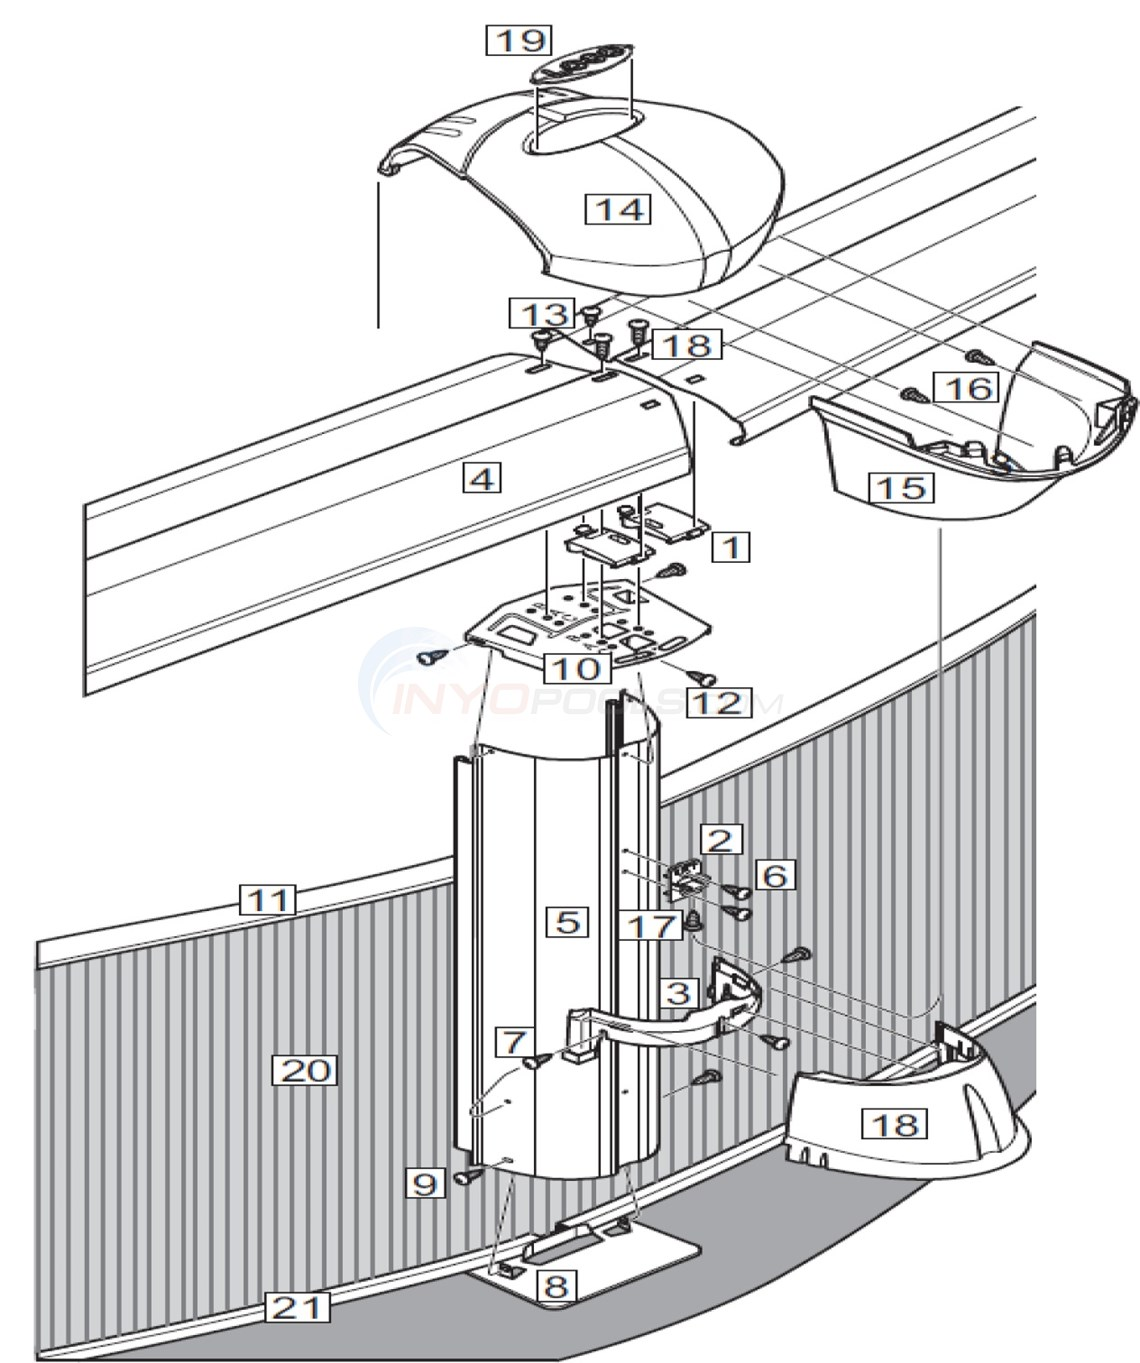 "J5000 Mist 33' Round 52"" Wall (Steel Top Rail, Steel Upright) Diagram"